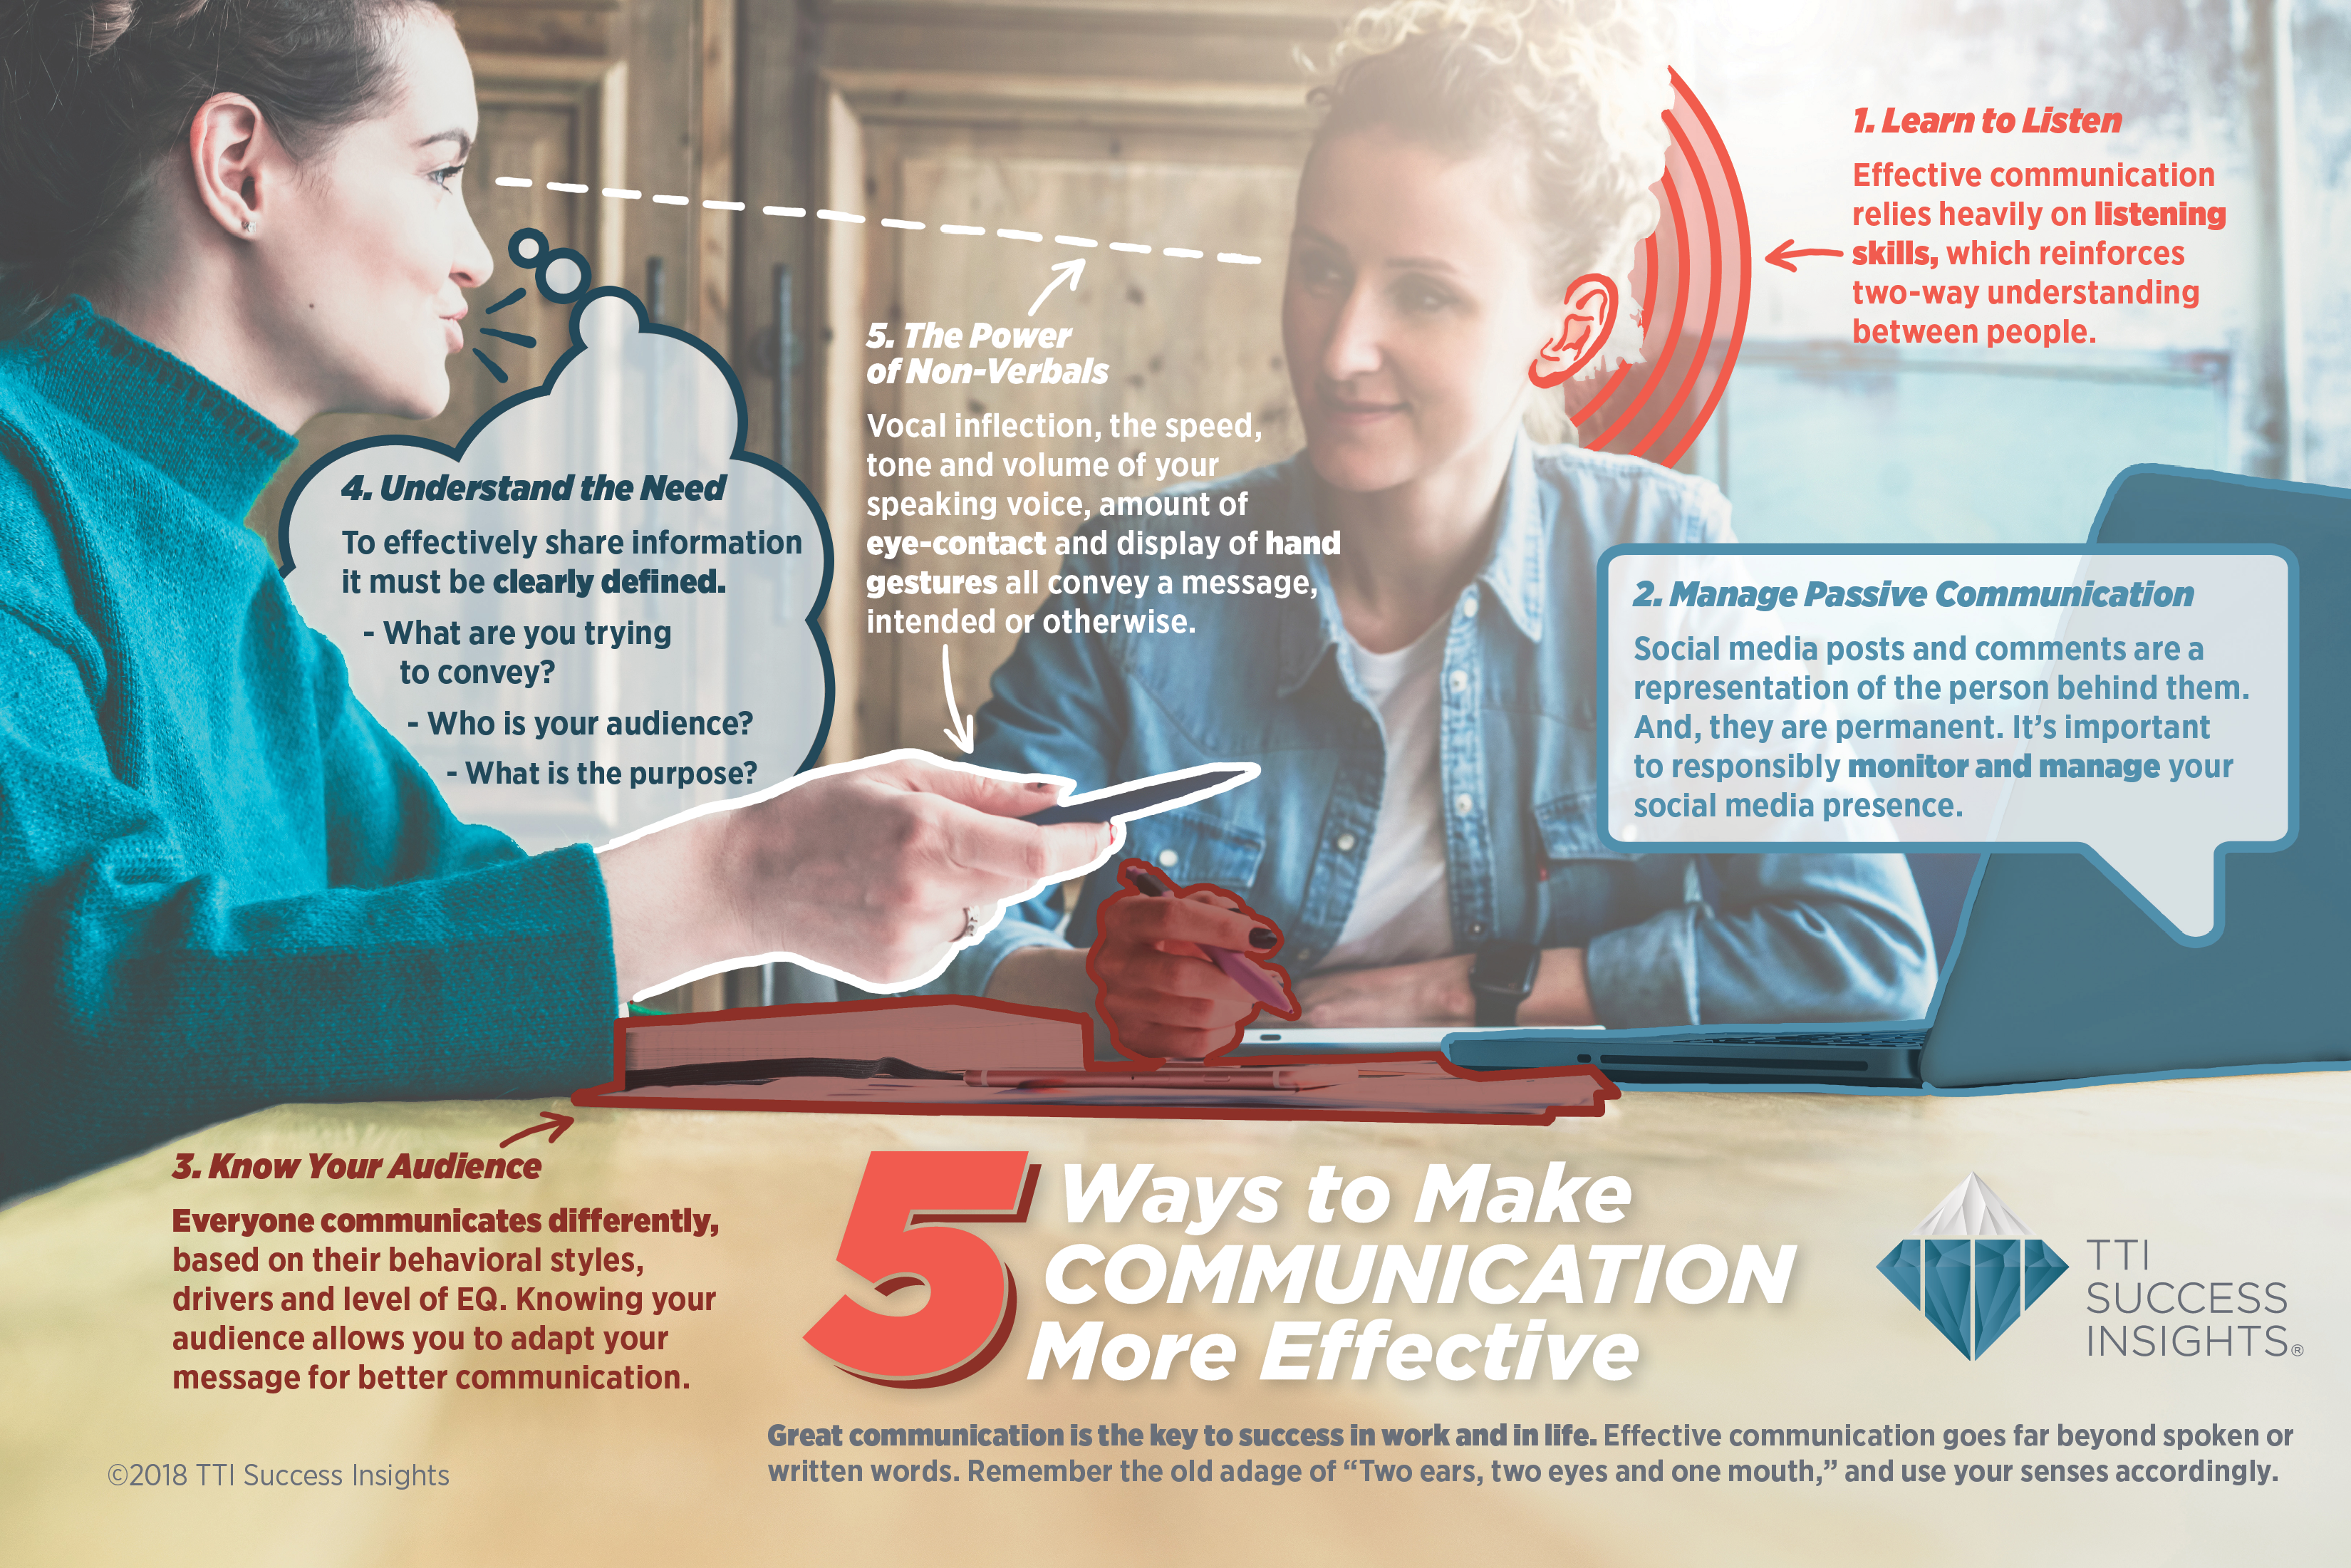 5 Ways to Make Communication More Effective